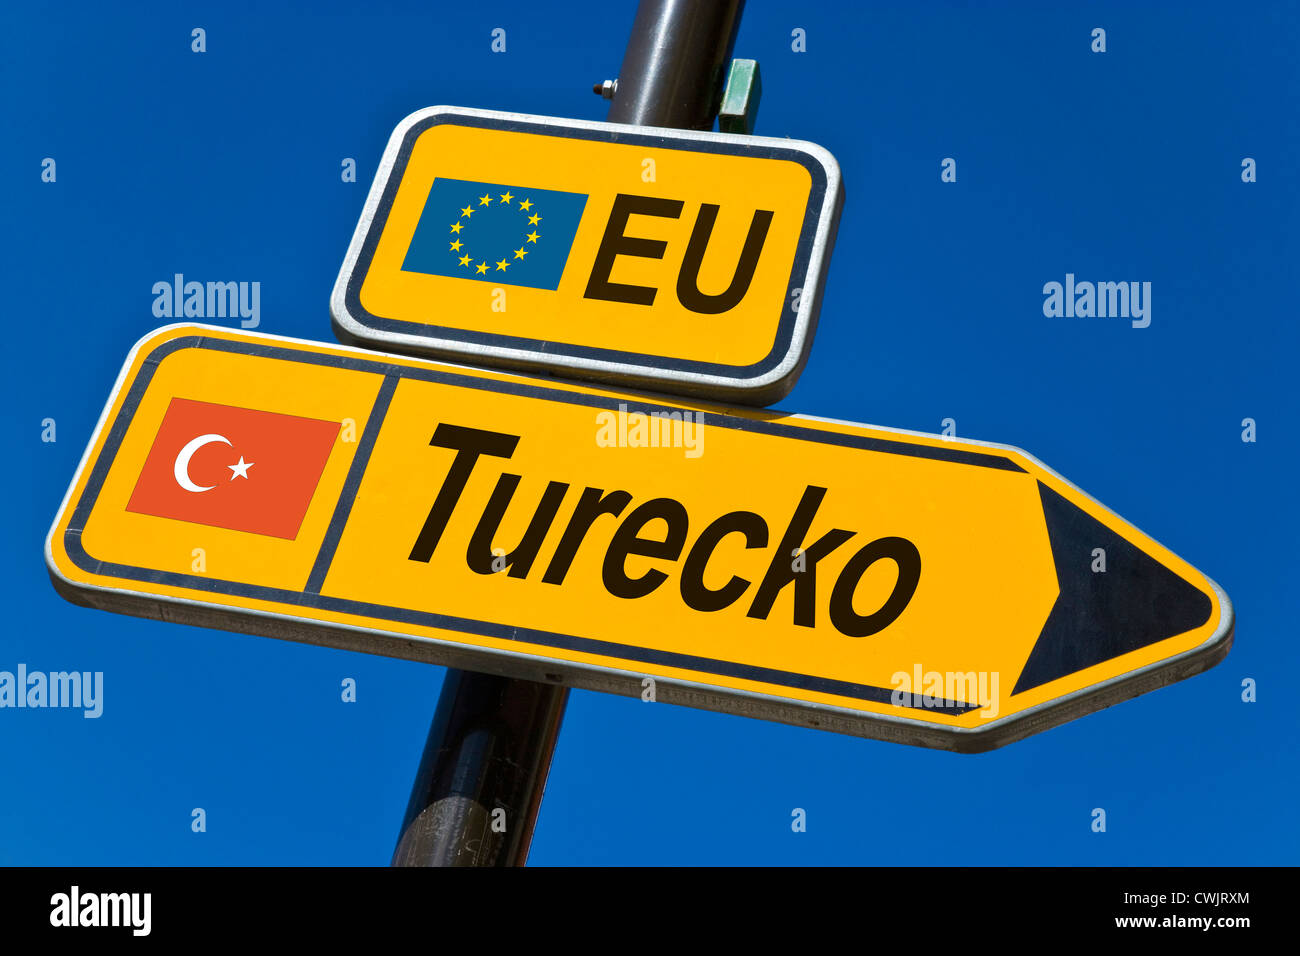 EU - candidate state for membership 2010 - Turkey - Stock Image